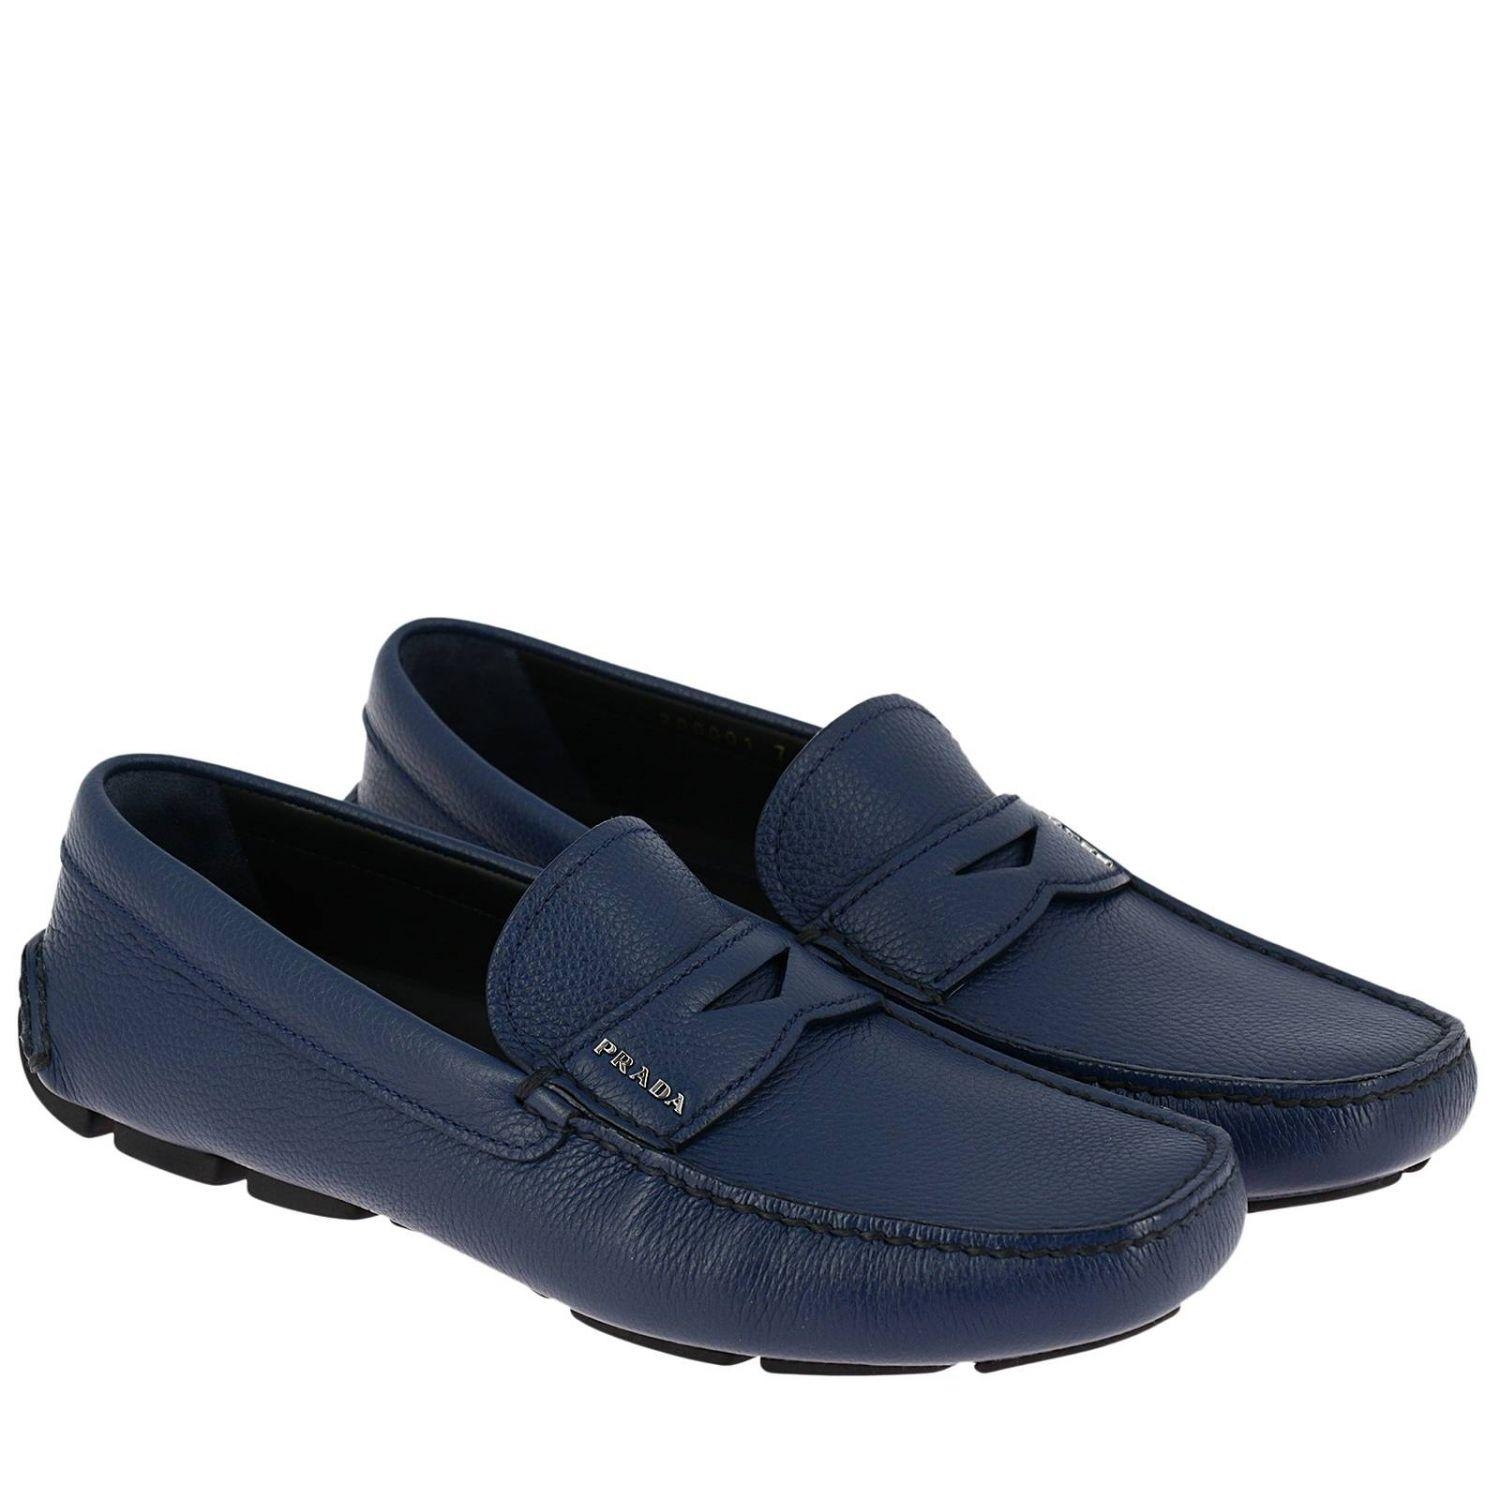 Prada Leather Loafers Shoes Men in Blue